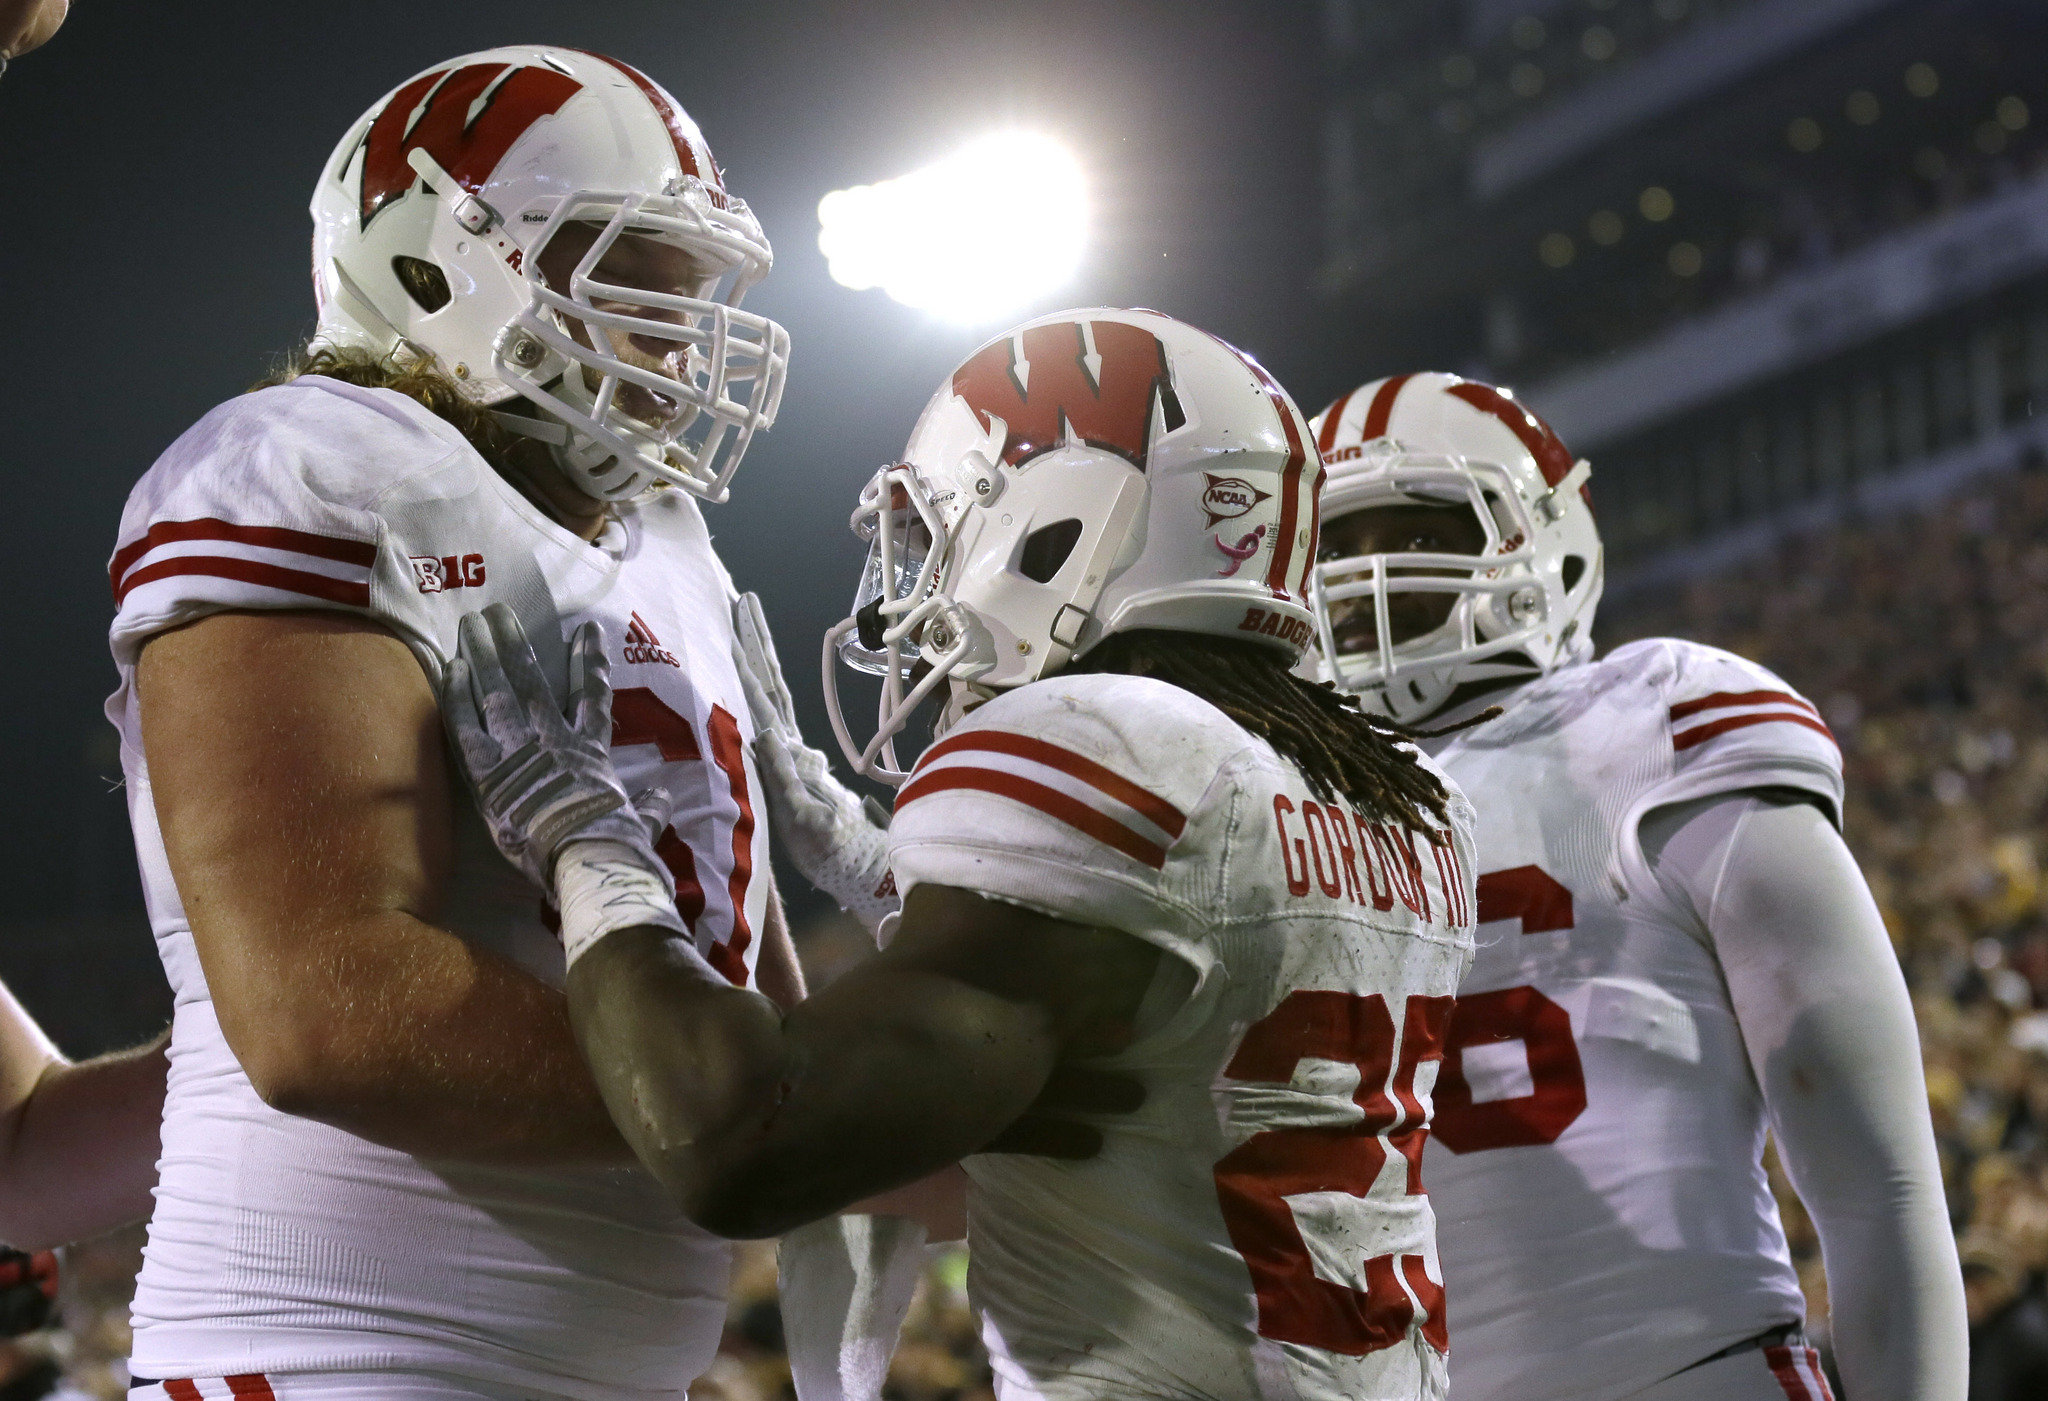 Be thankful for power runners like Melvin Gordon and Thanksgiving weekend rivalry games